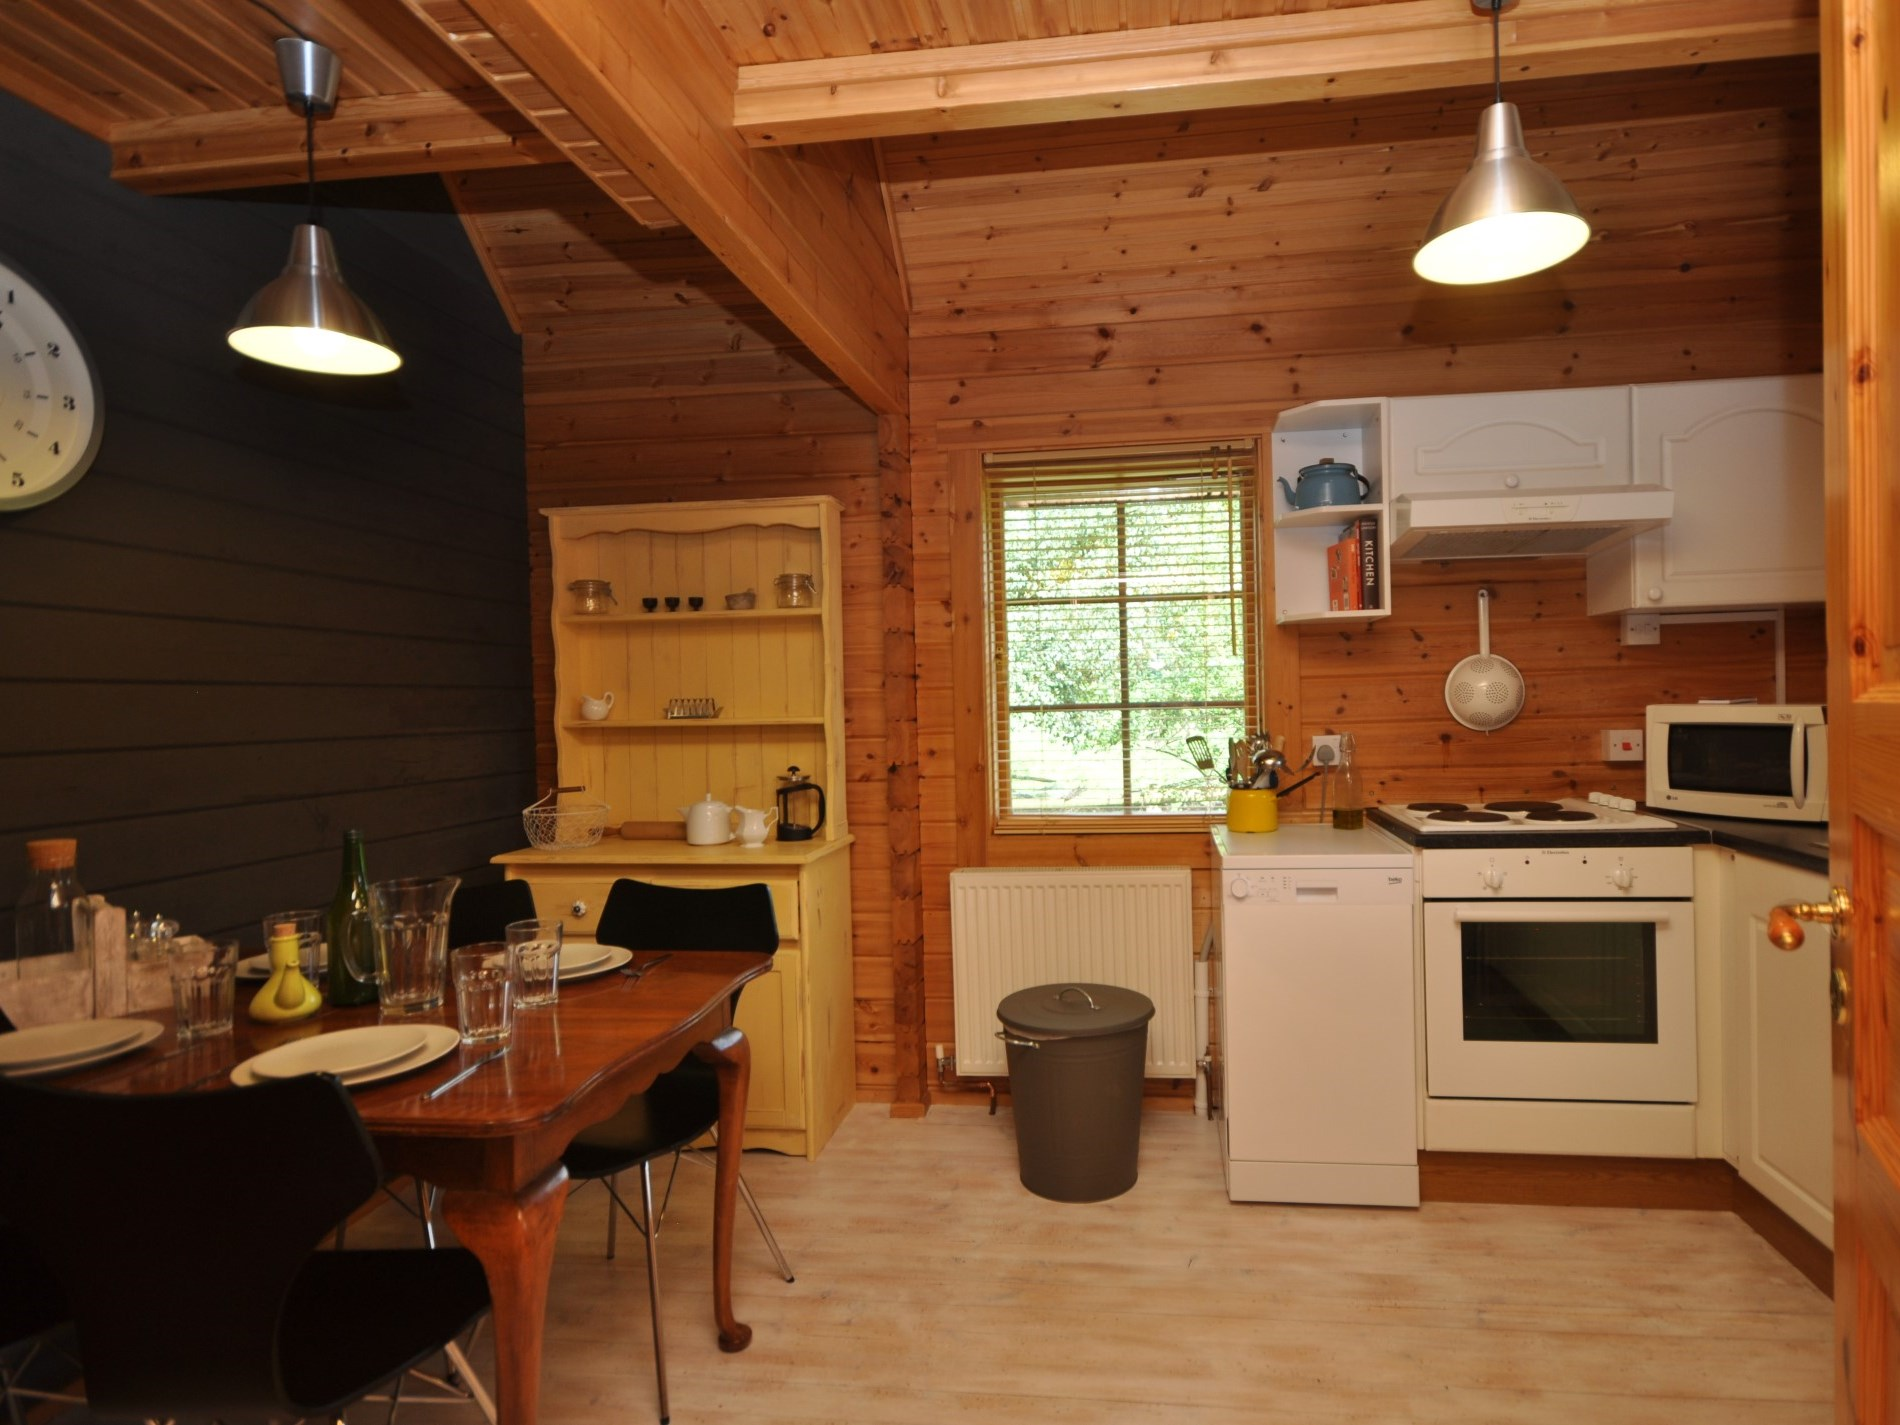 A traditional kitchen with diner